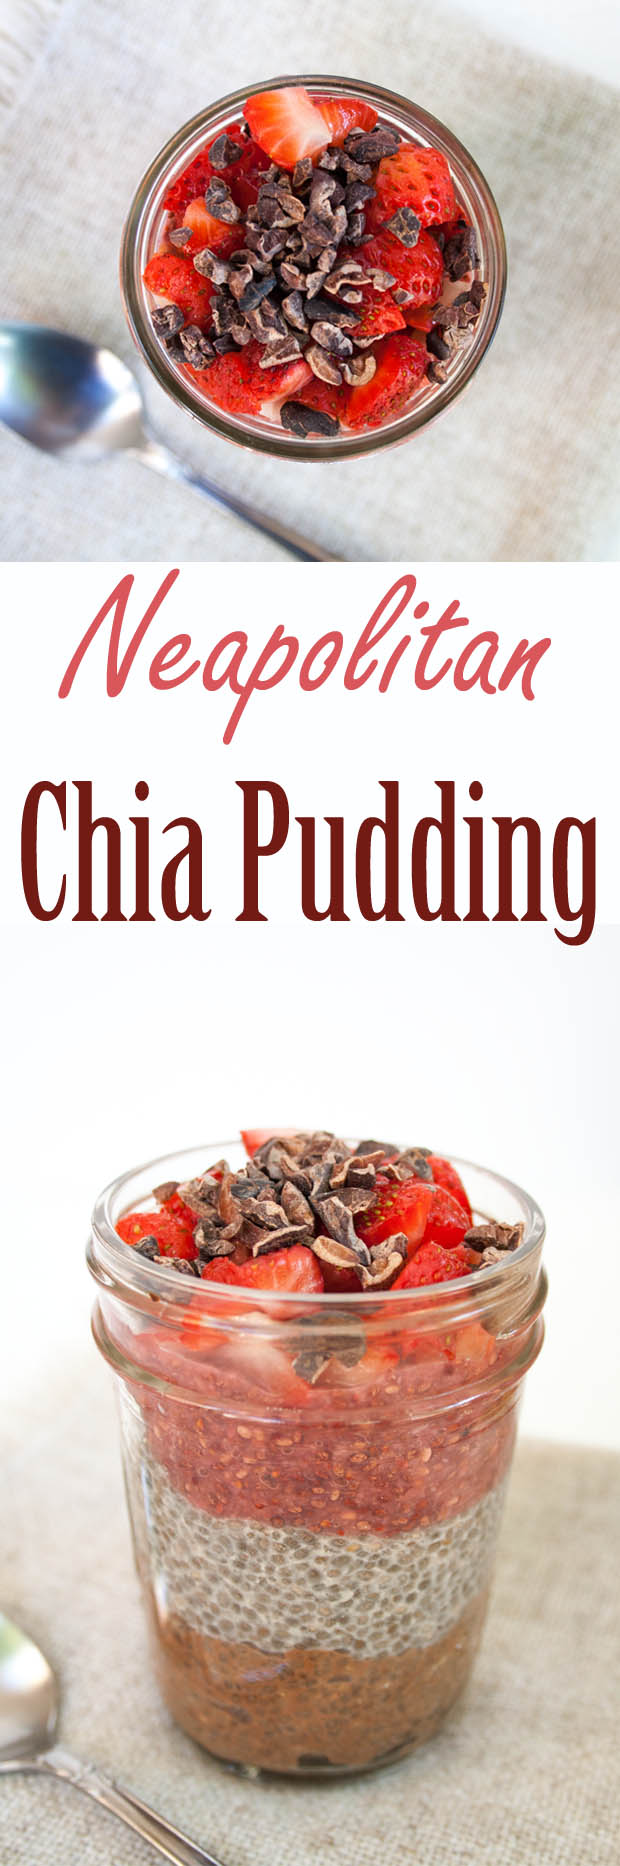 Neapolitan Chia Pudding (vegan, gluten free) - This healthy pudding can be eaten for breakfast or dessert. It is easy to make and great for on the go!